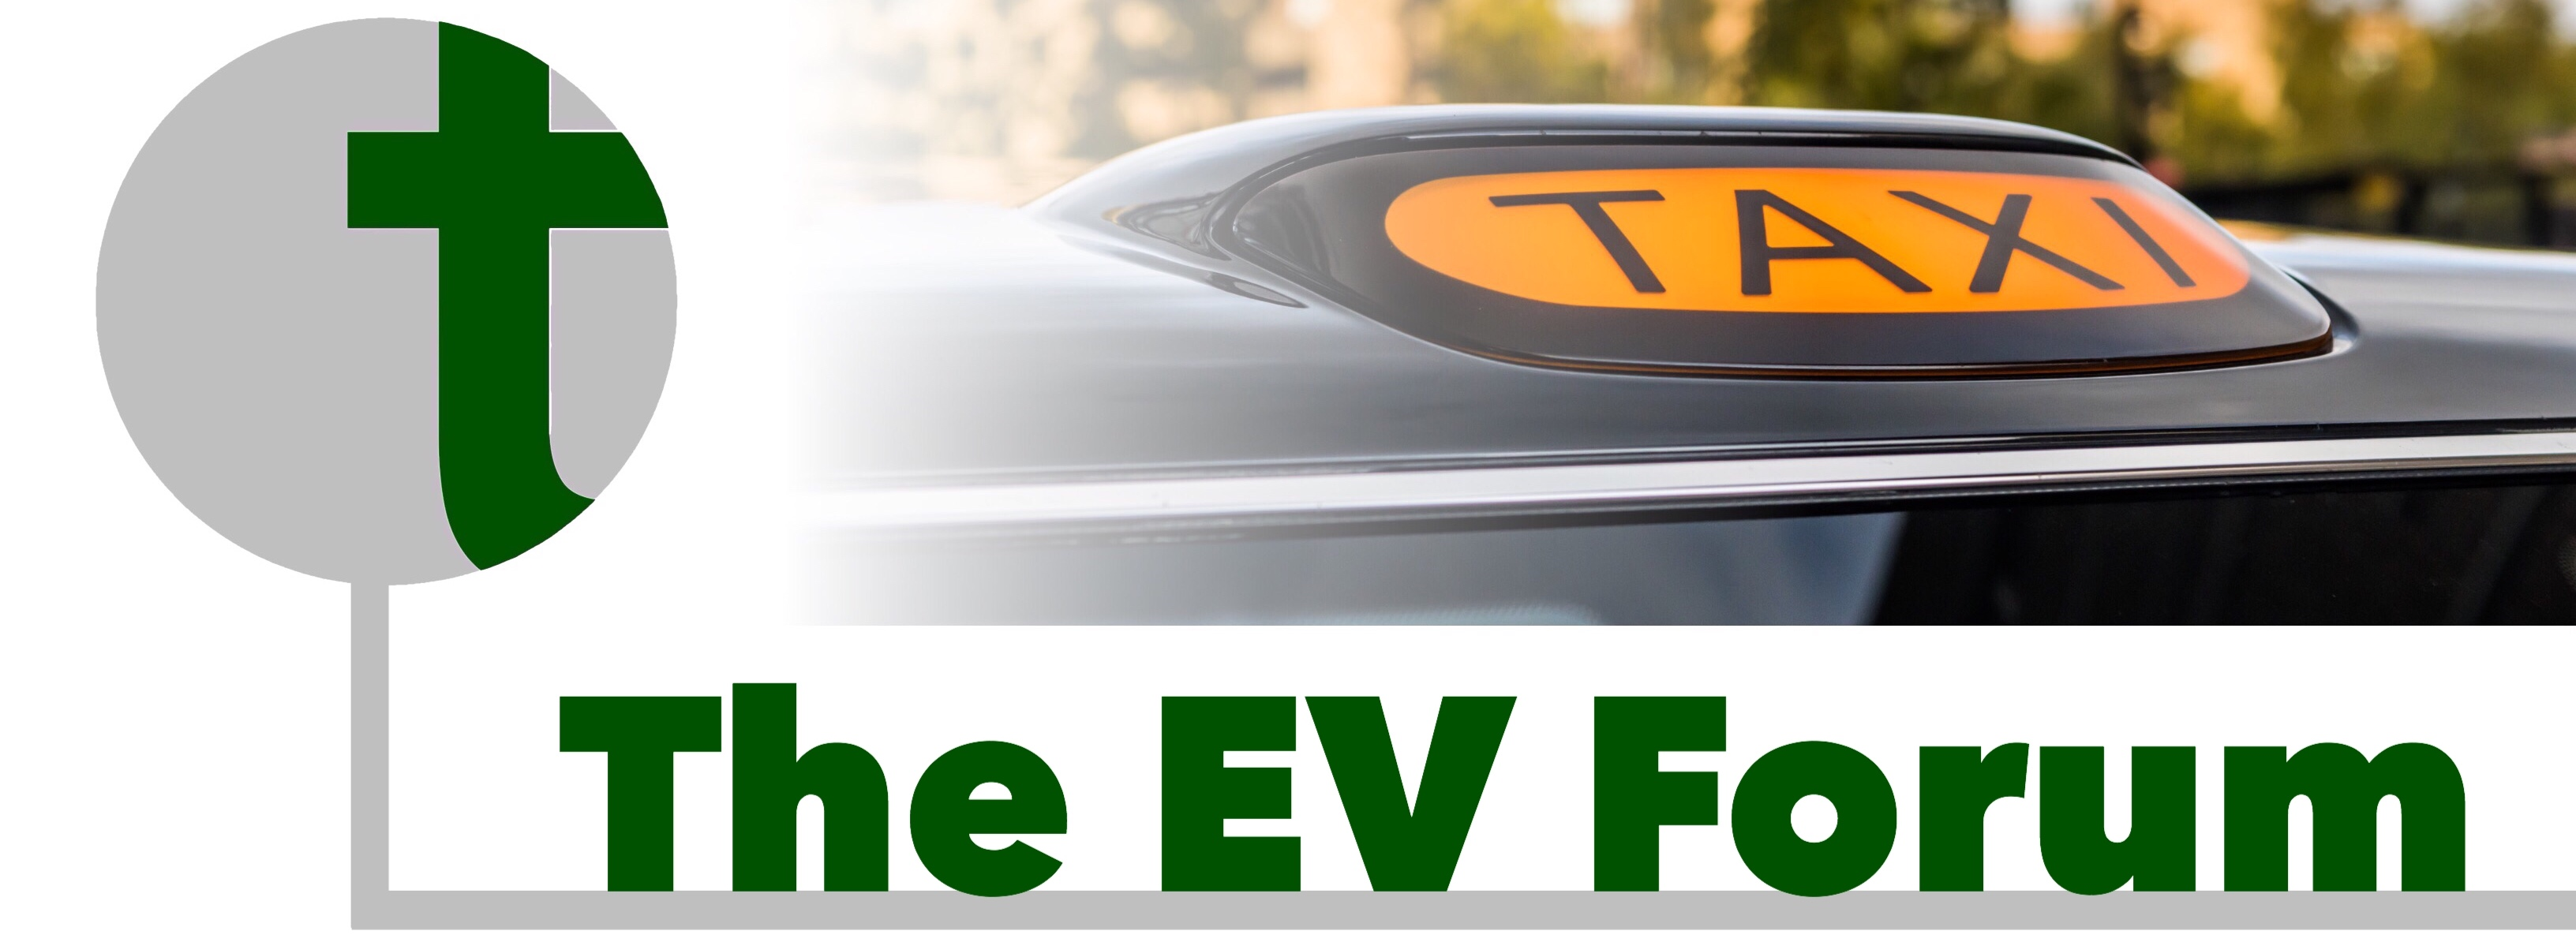 Taxipoint Taxi News Ev Forum